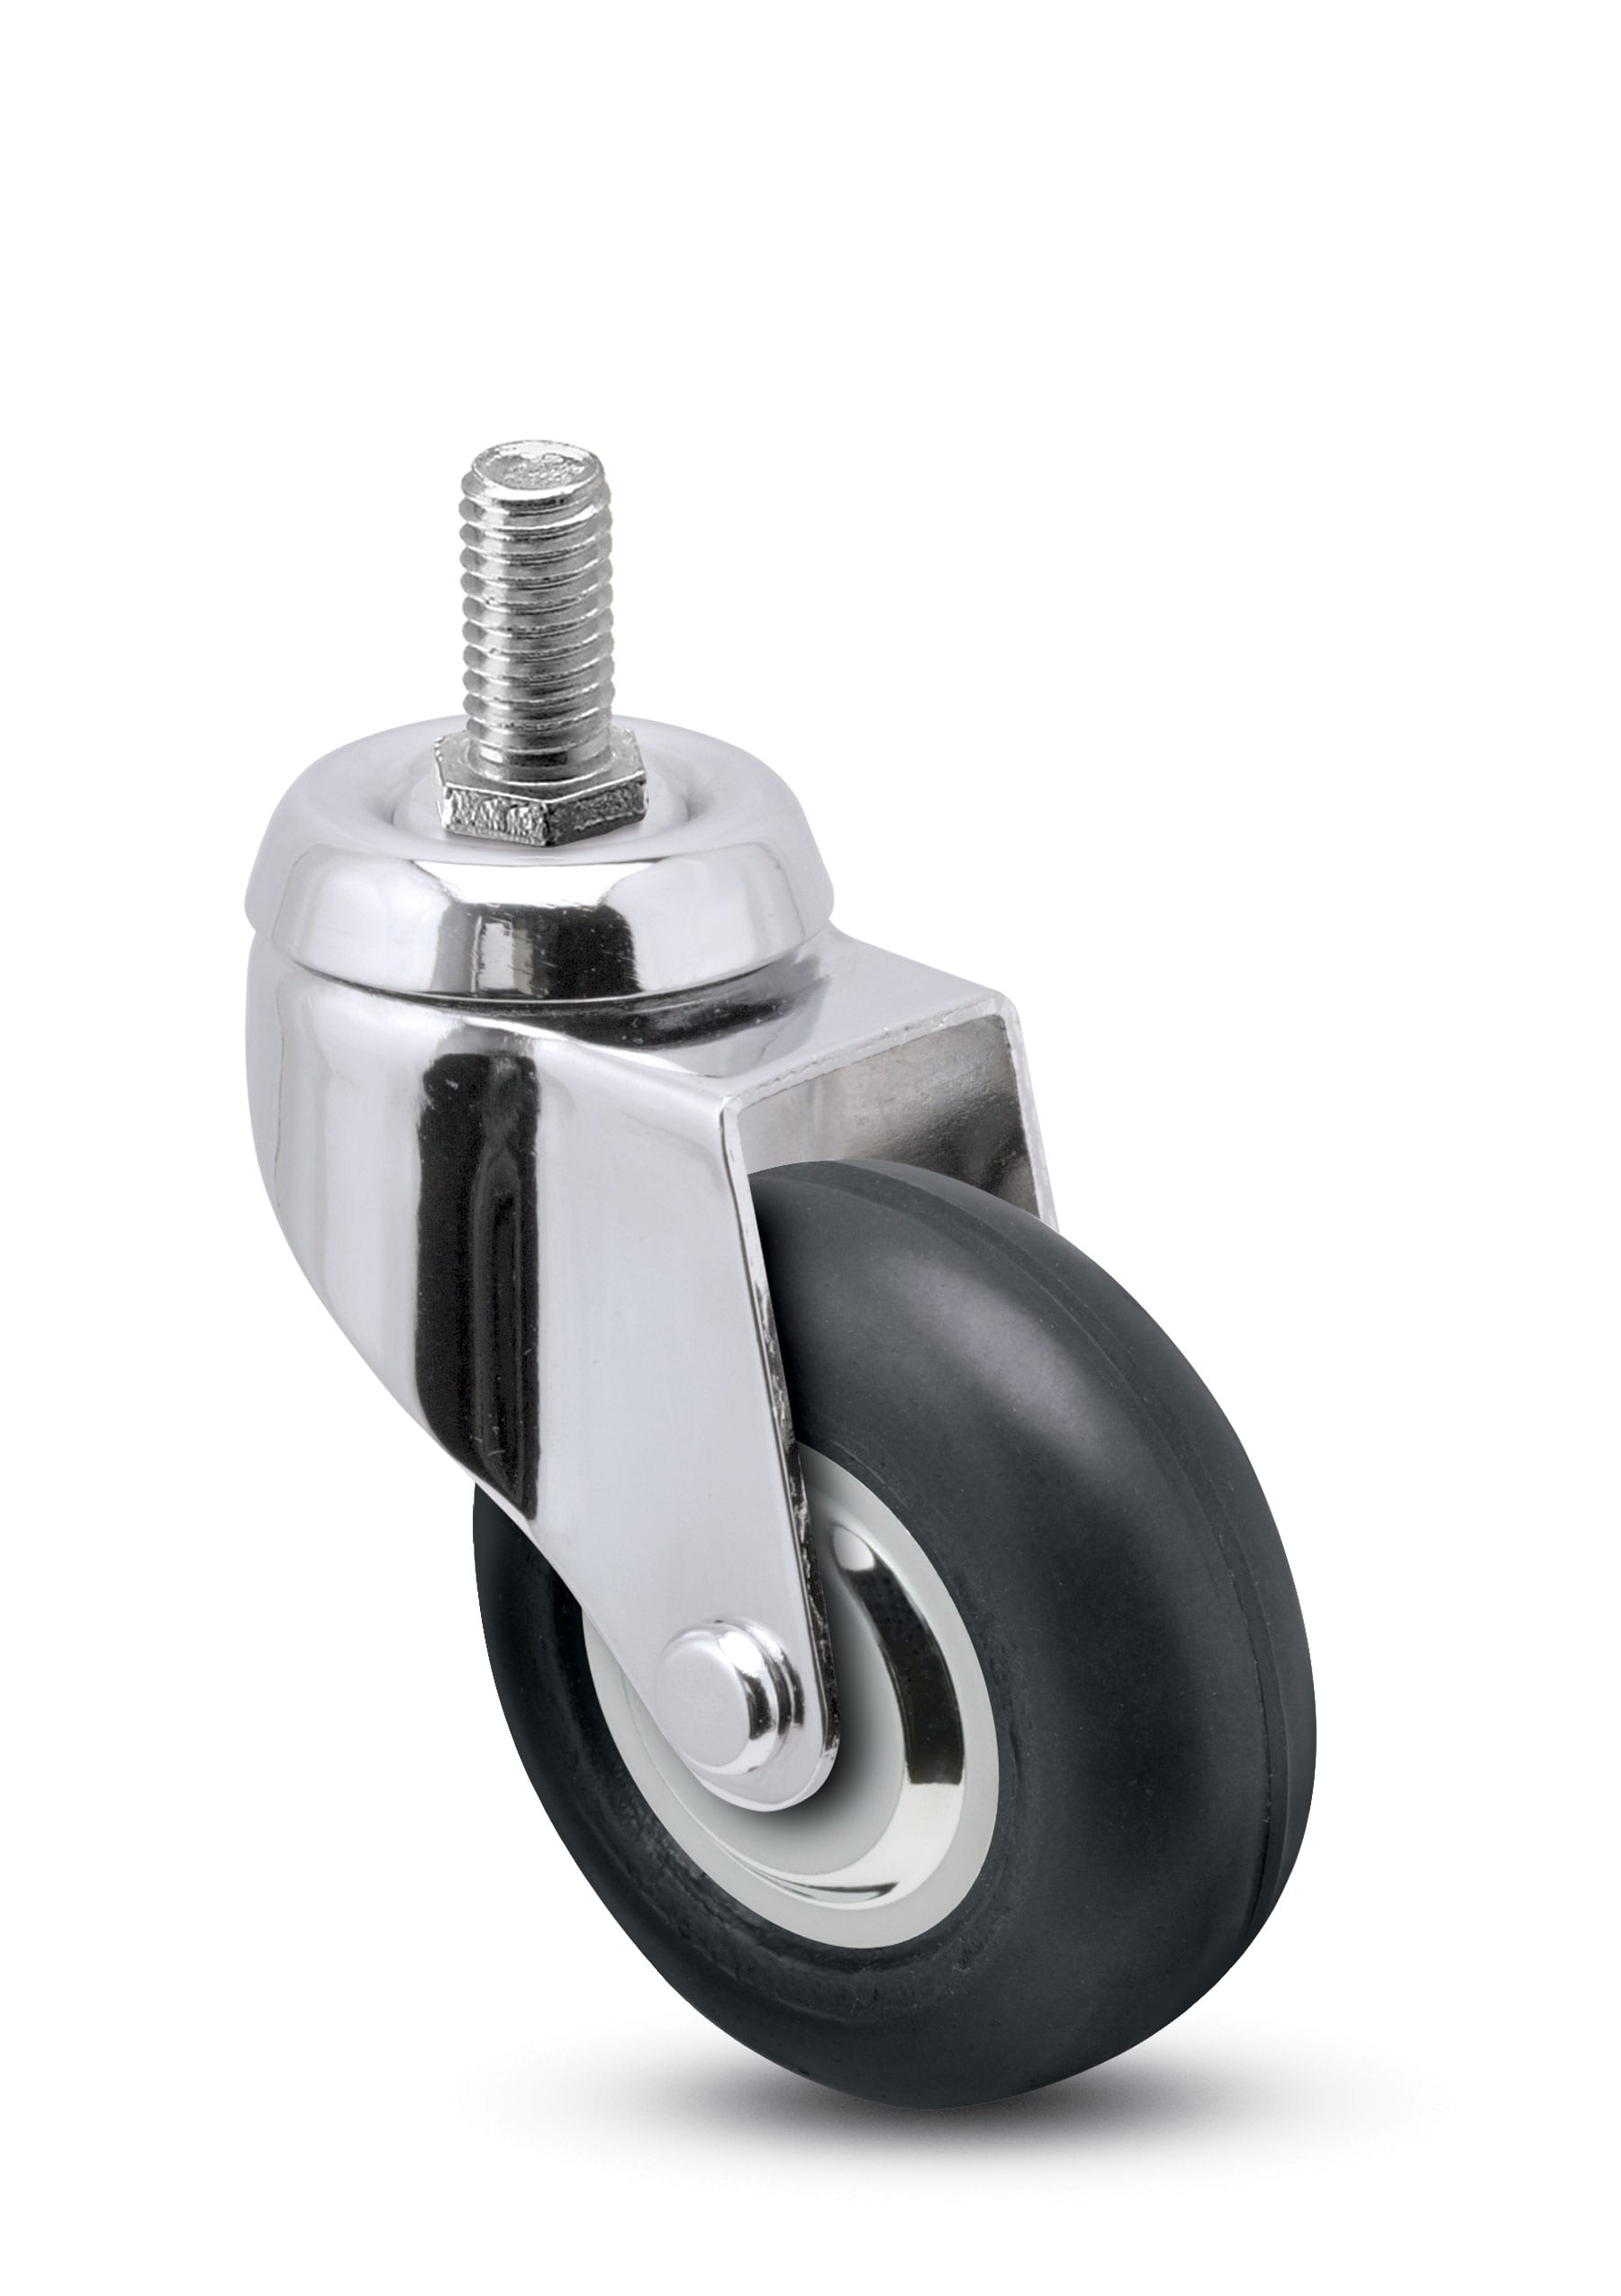 Casters And Wheels Best Prices On 3 Swivel Casters And Wheels